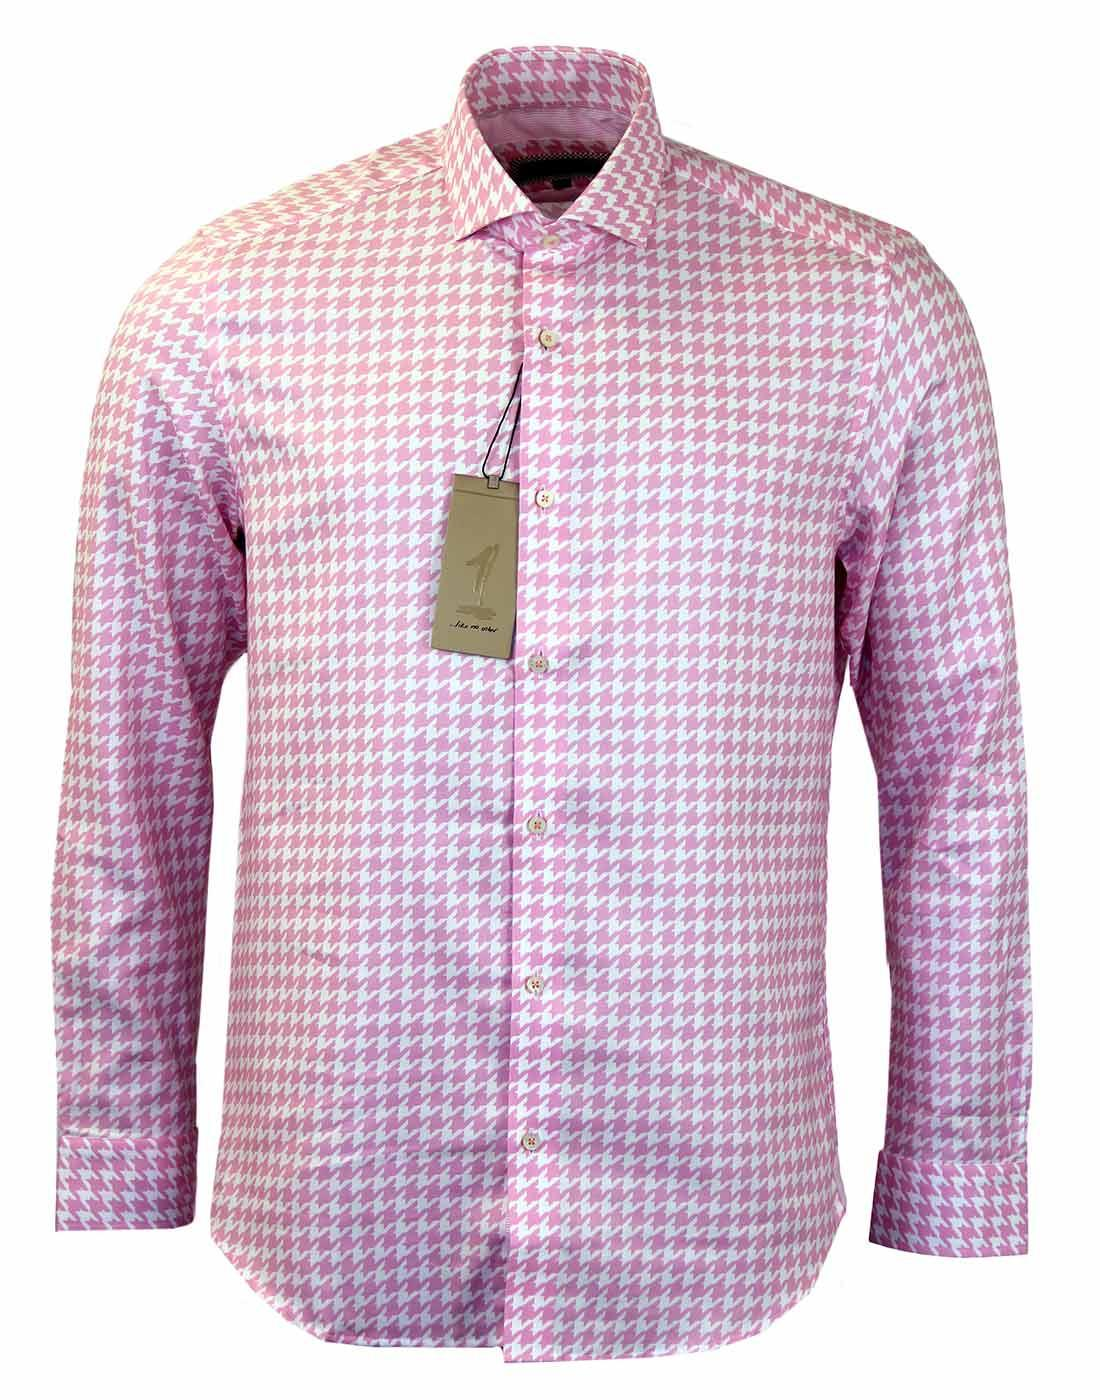 Drone 1 LIKE NO OTHER 60s Mod Bold Dogtooth Shirt